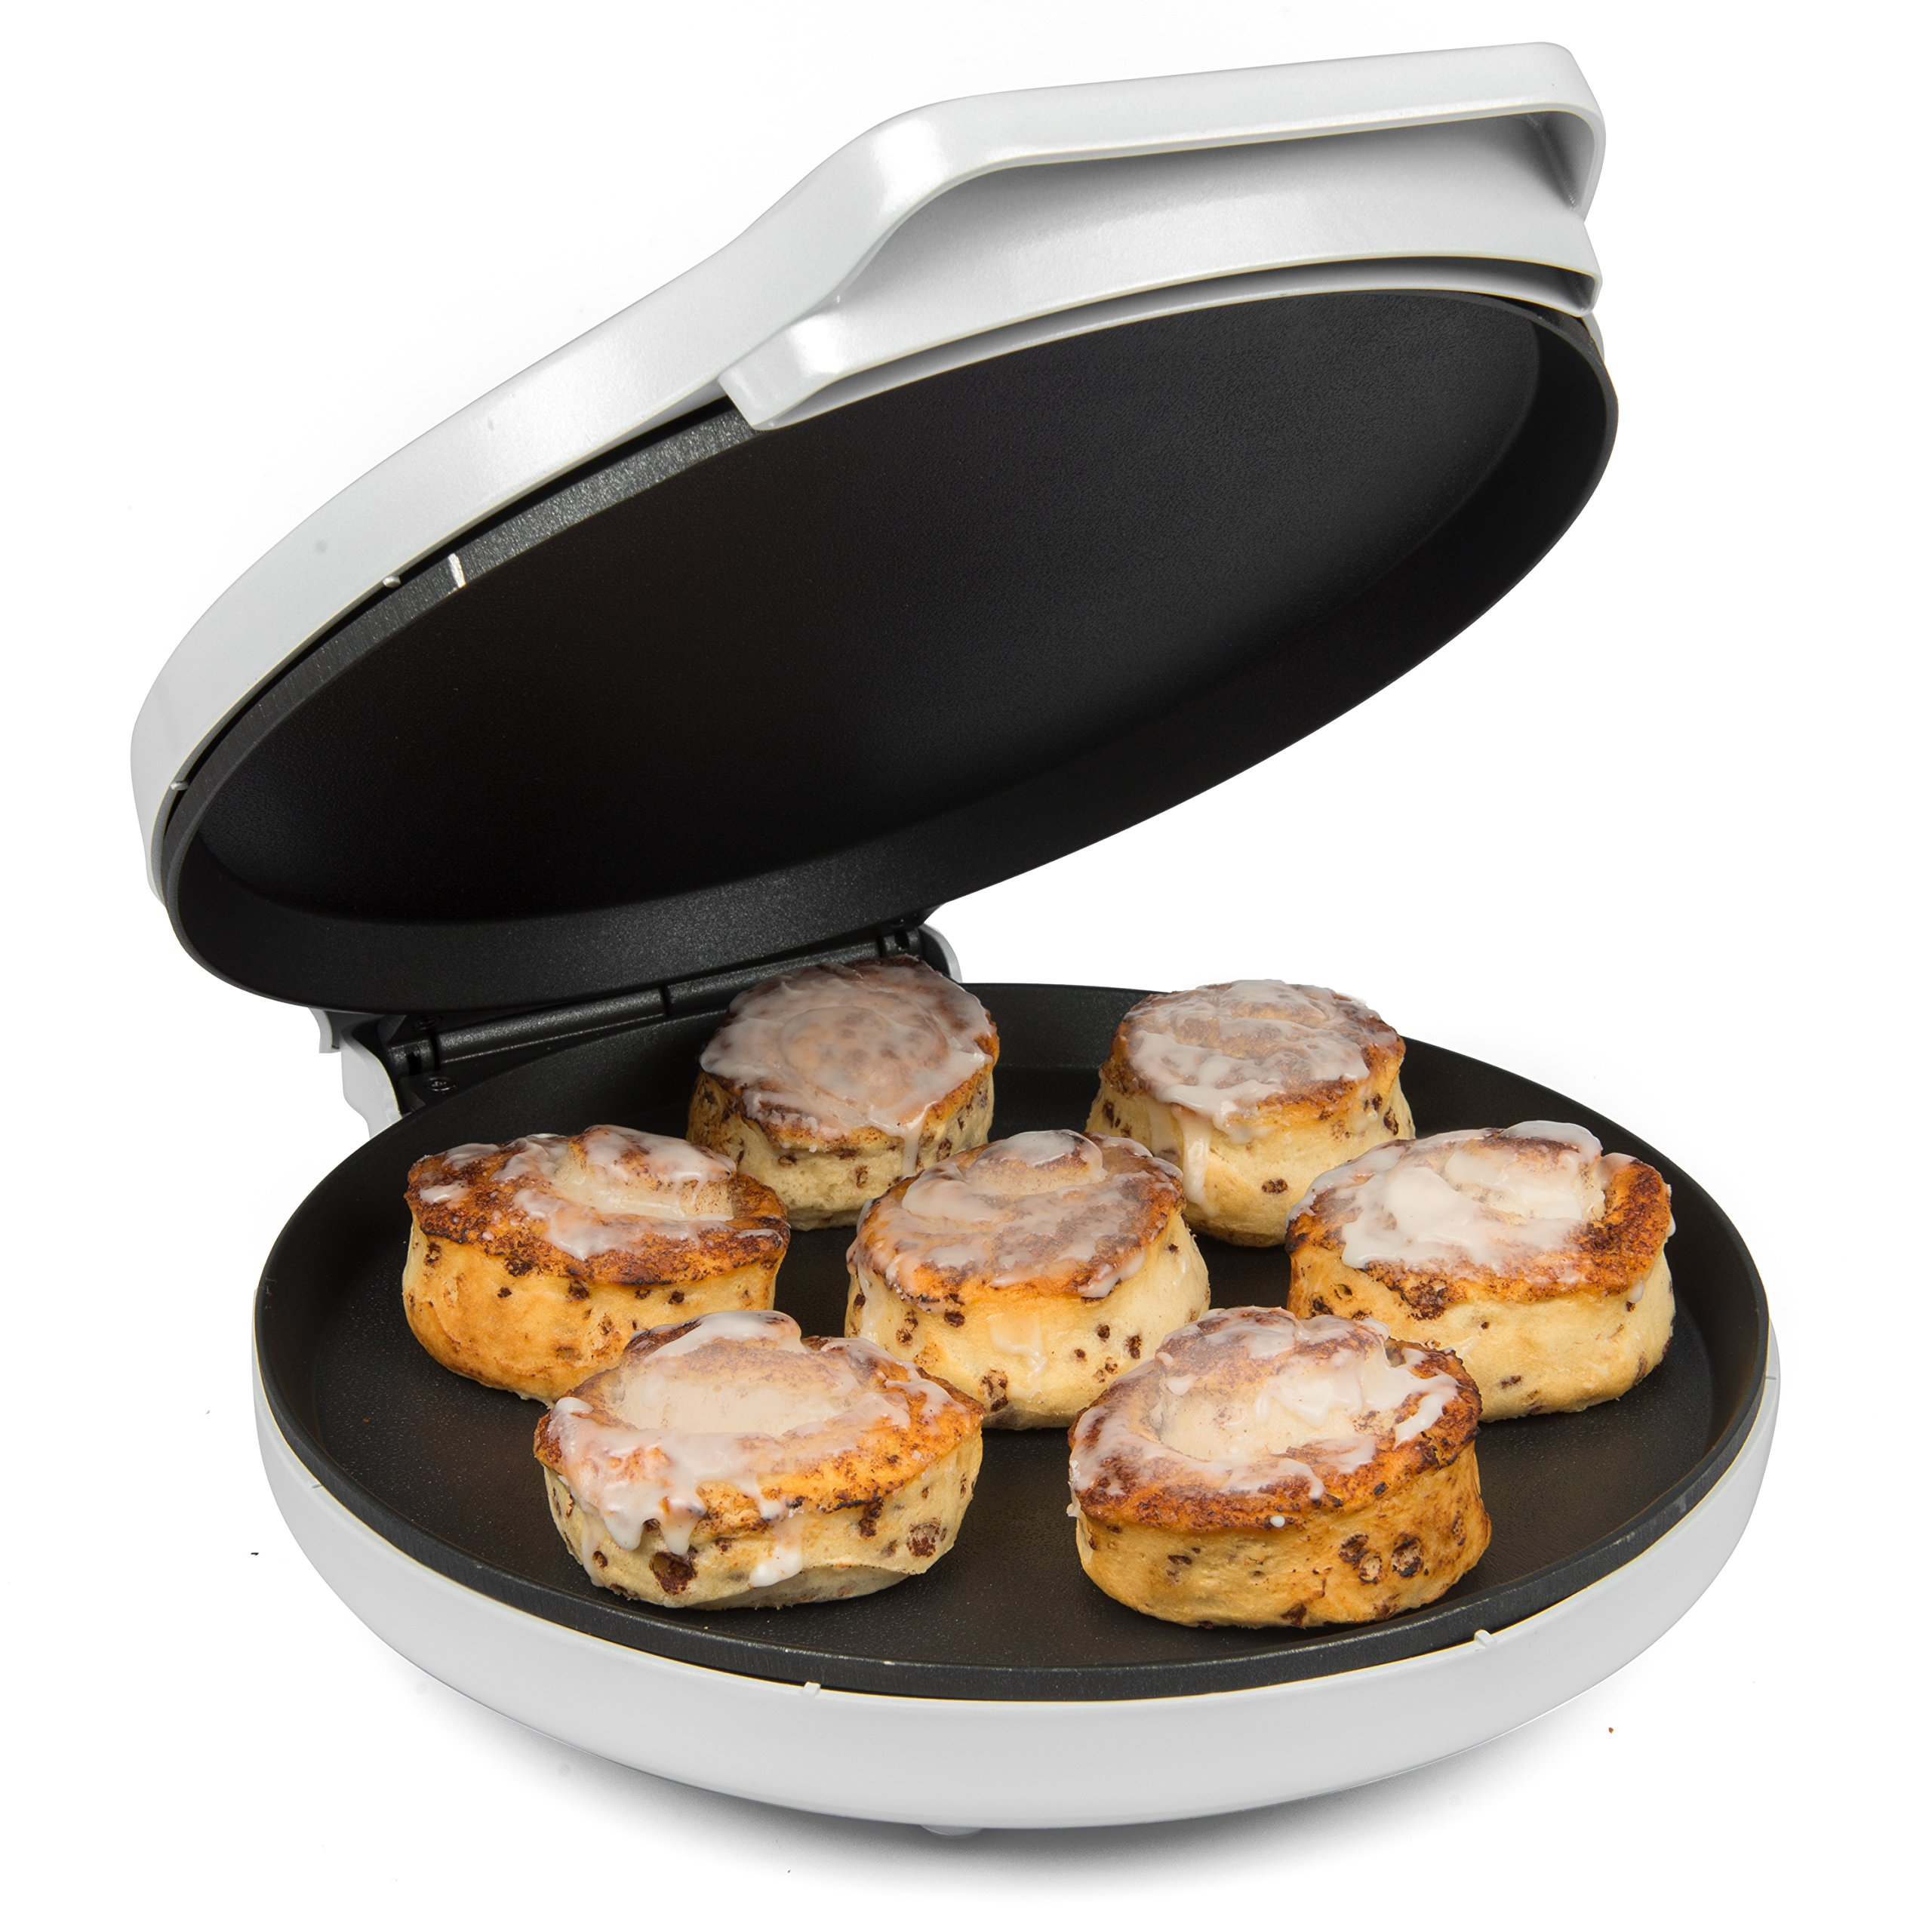 CucinaPro Pizza Maker and Everyday Baker - Electric Griddle Grill Pan Heats and Reheats in less than 2 minutes, White by CucinaPro (Image #3)